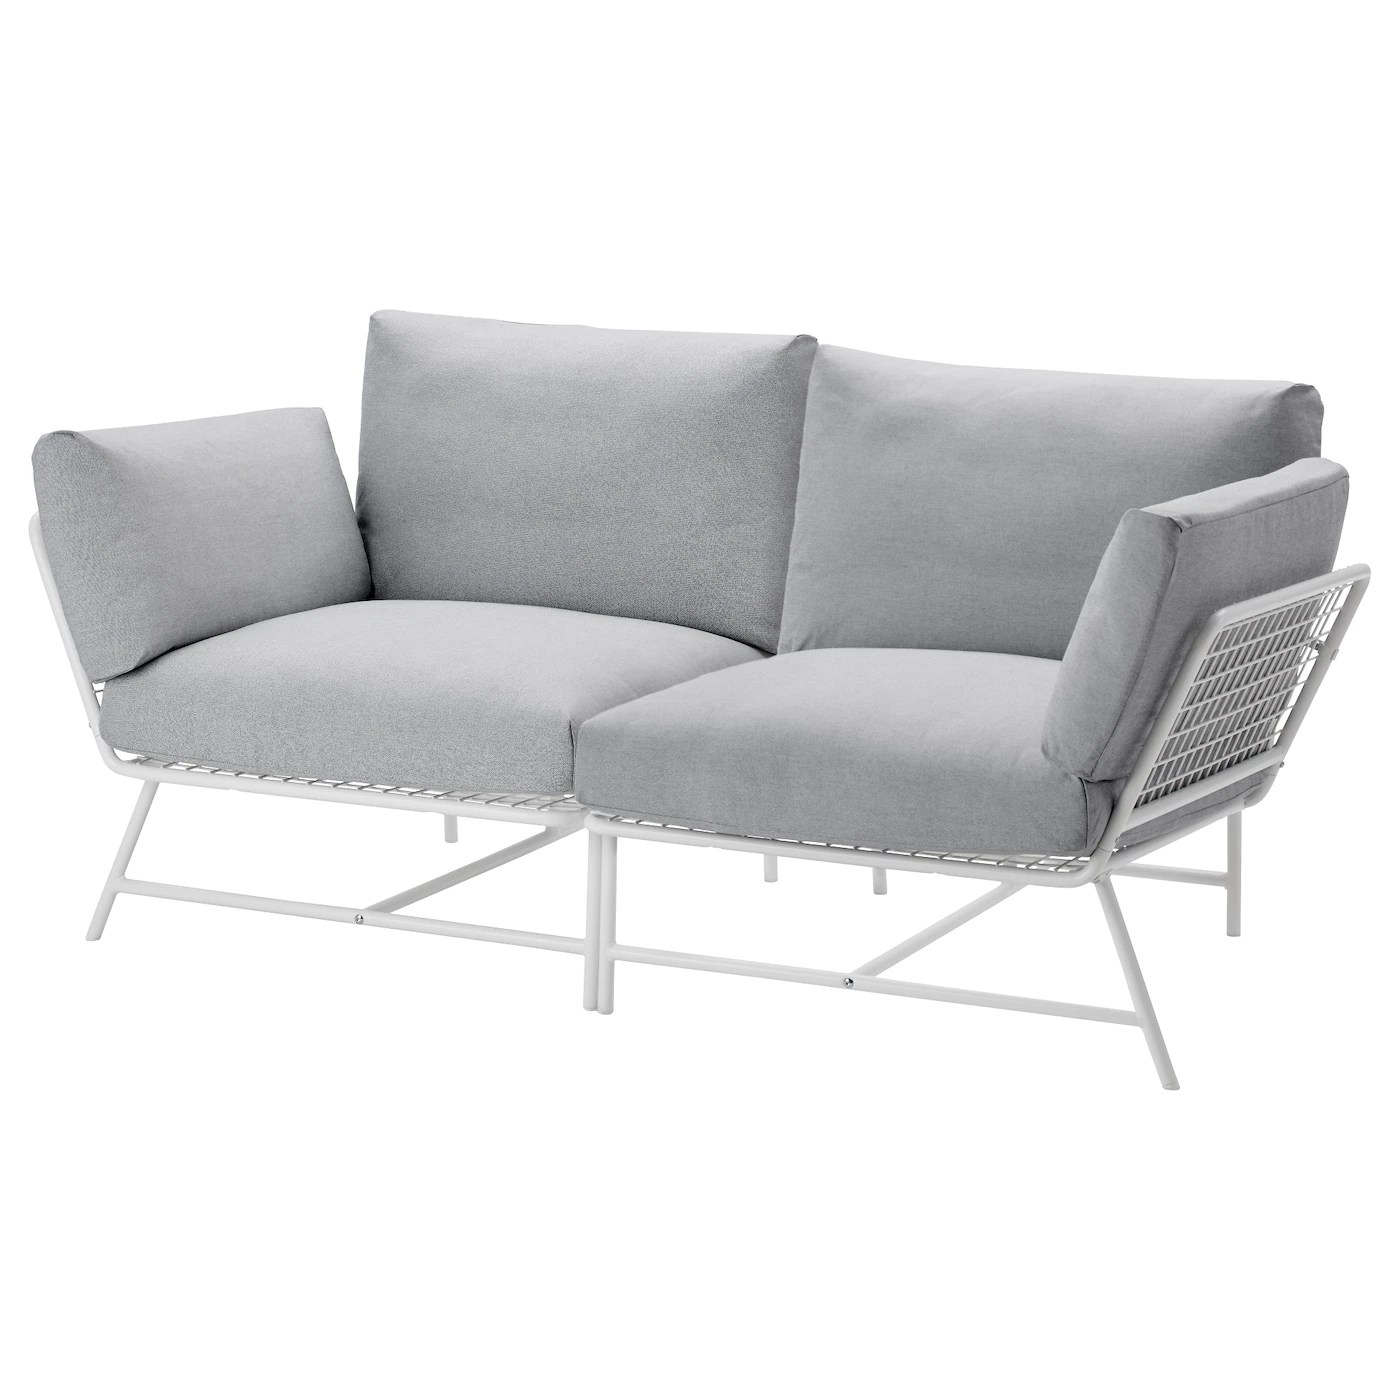 Dreisitzer Sofa Ikea Laauser Polstermbel Cheap Cool Er Sofa Wei With Er Sofa Wei With